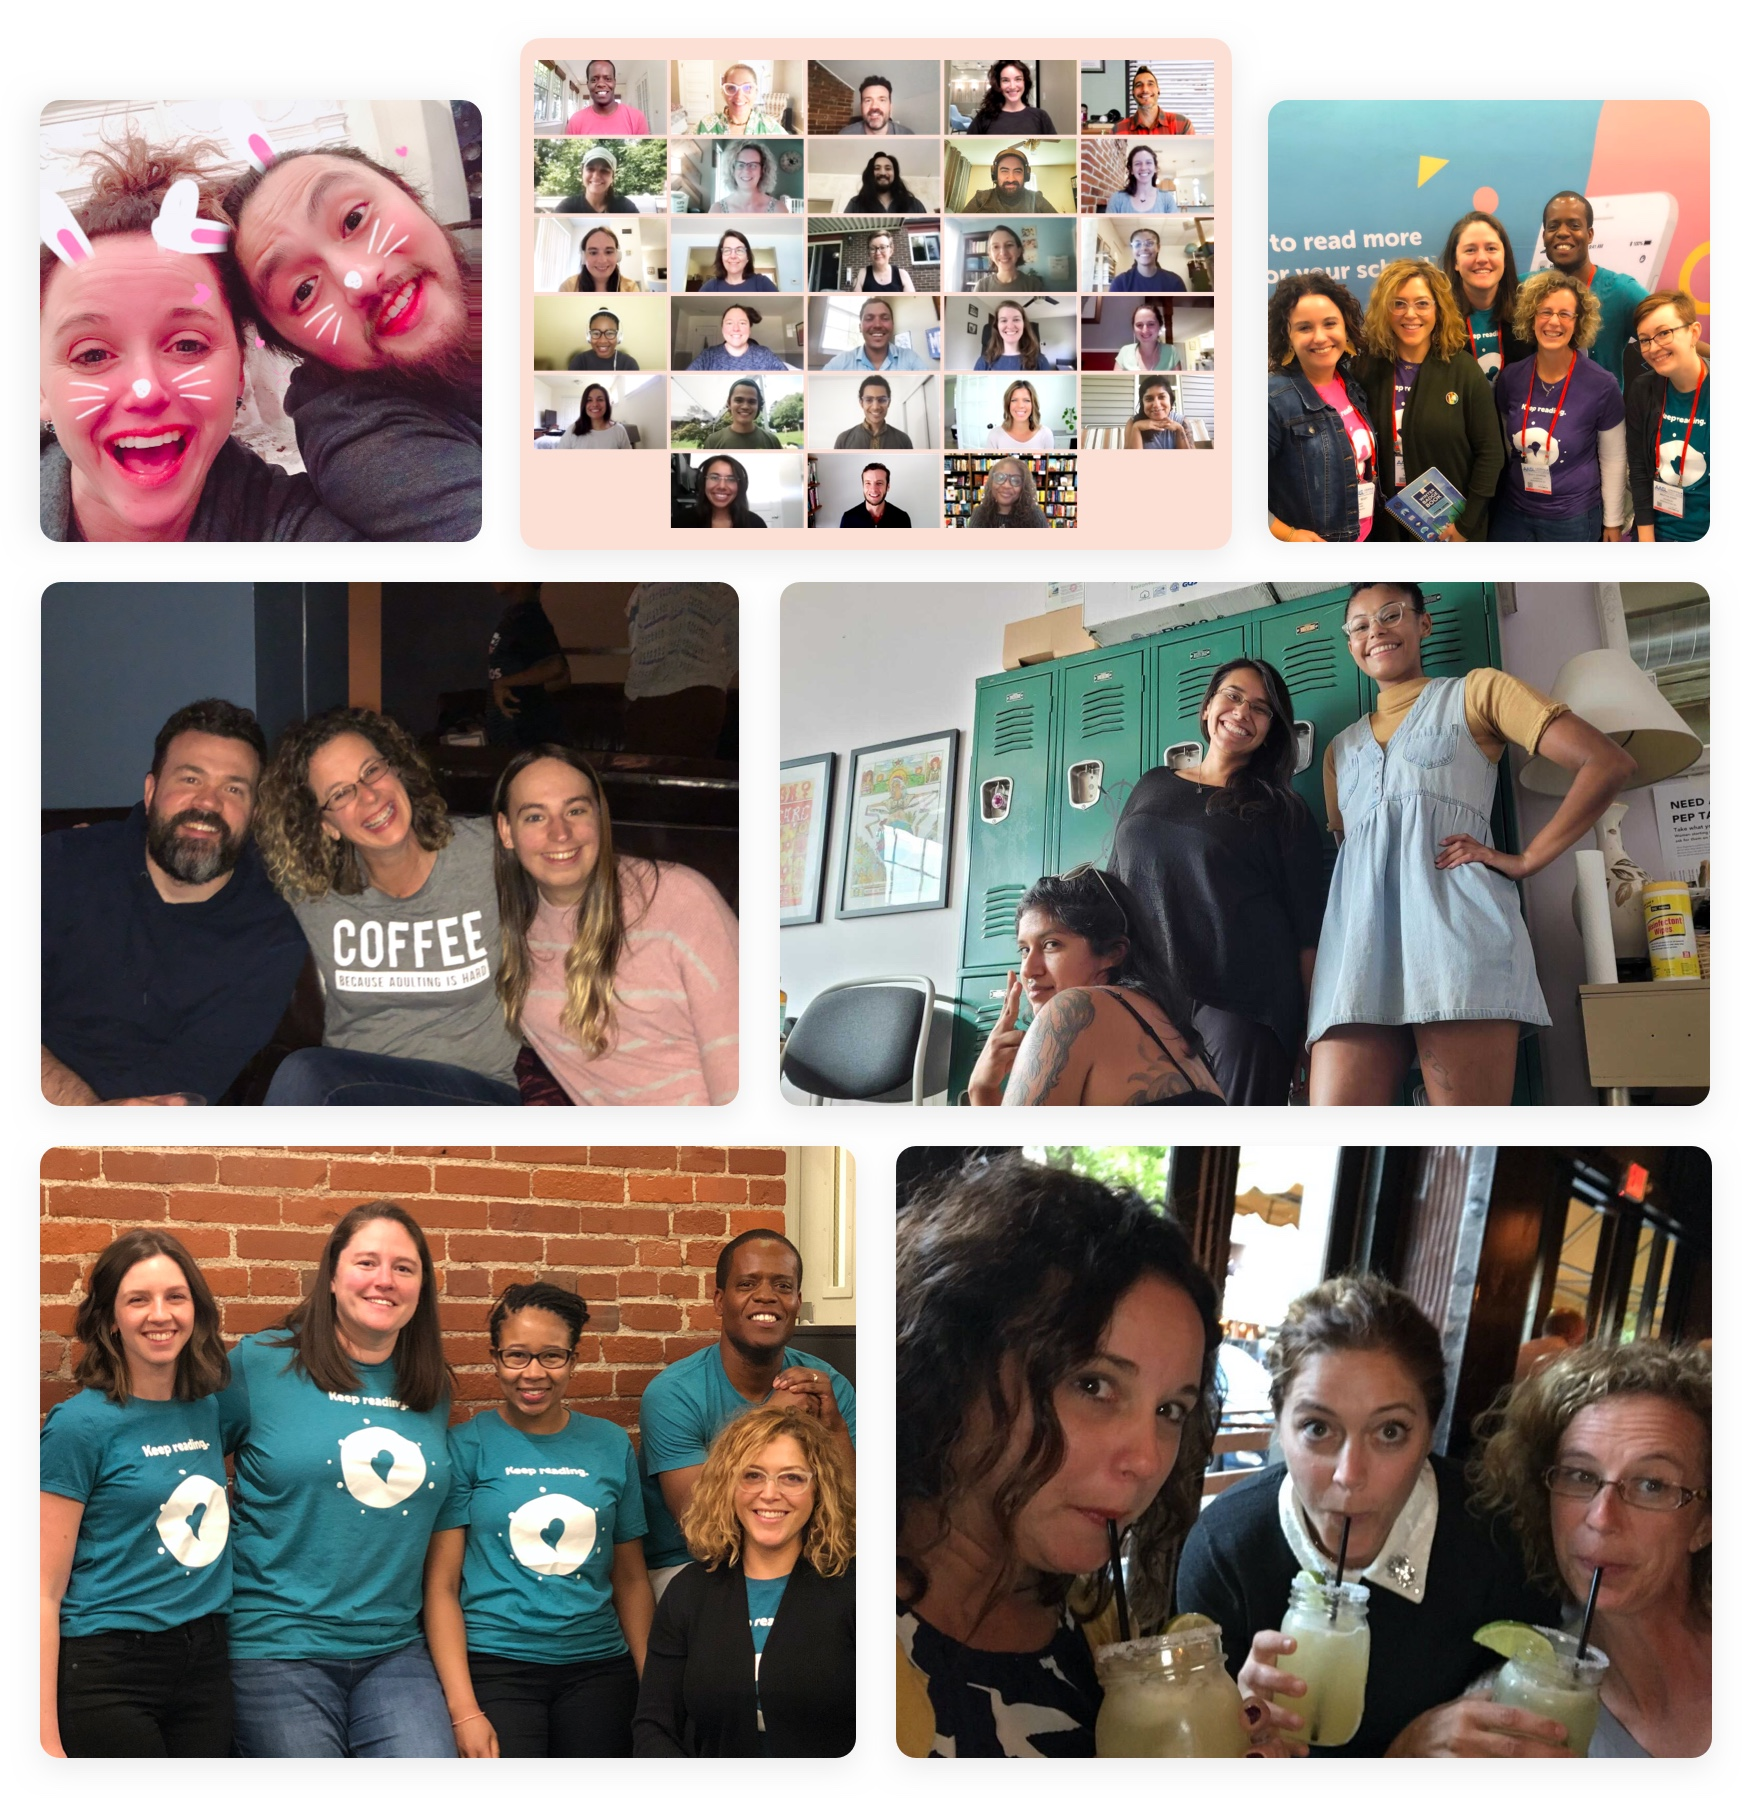 Grid of photos of the Zoobean team